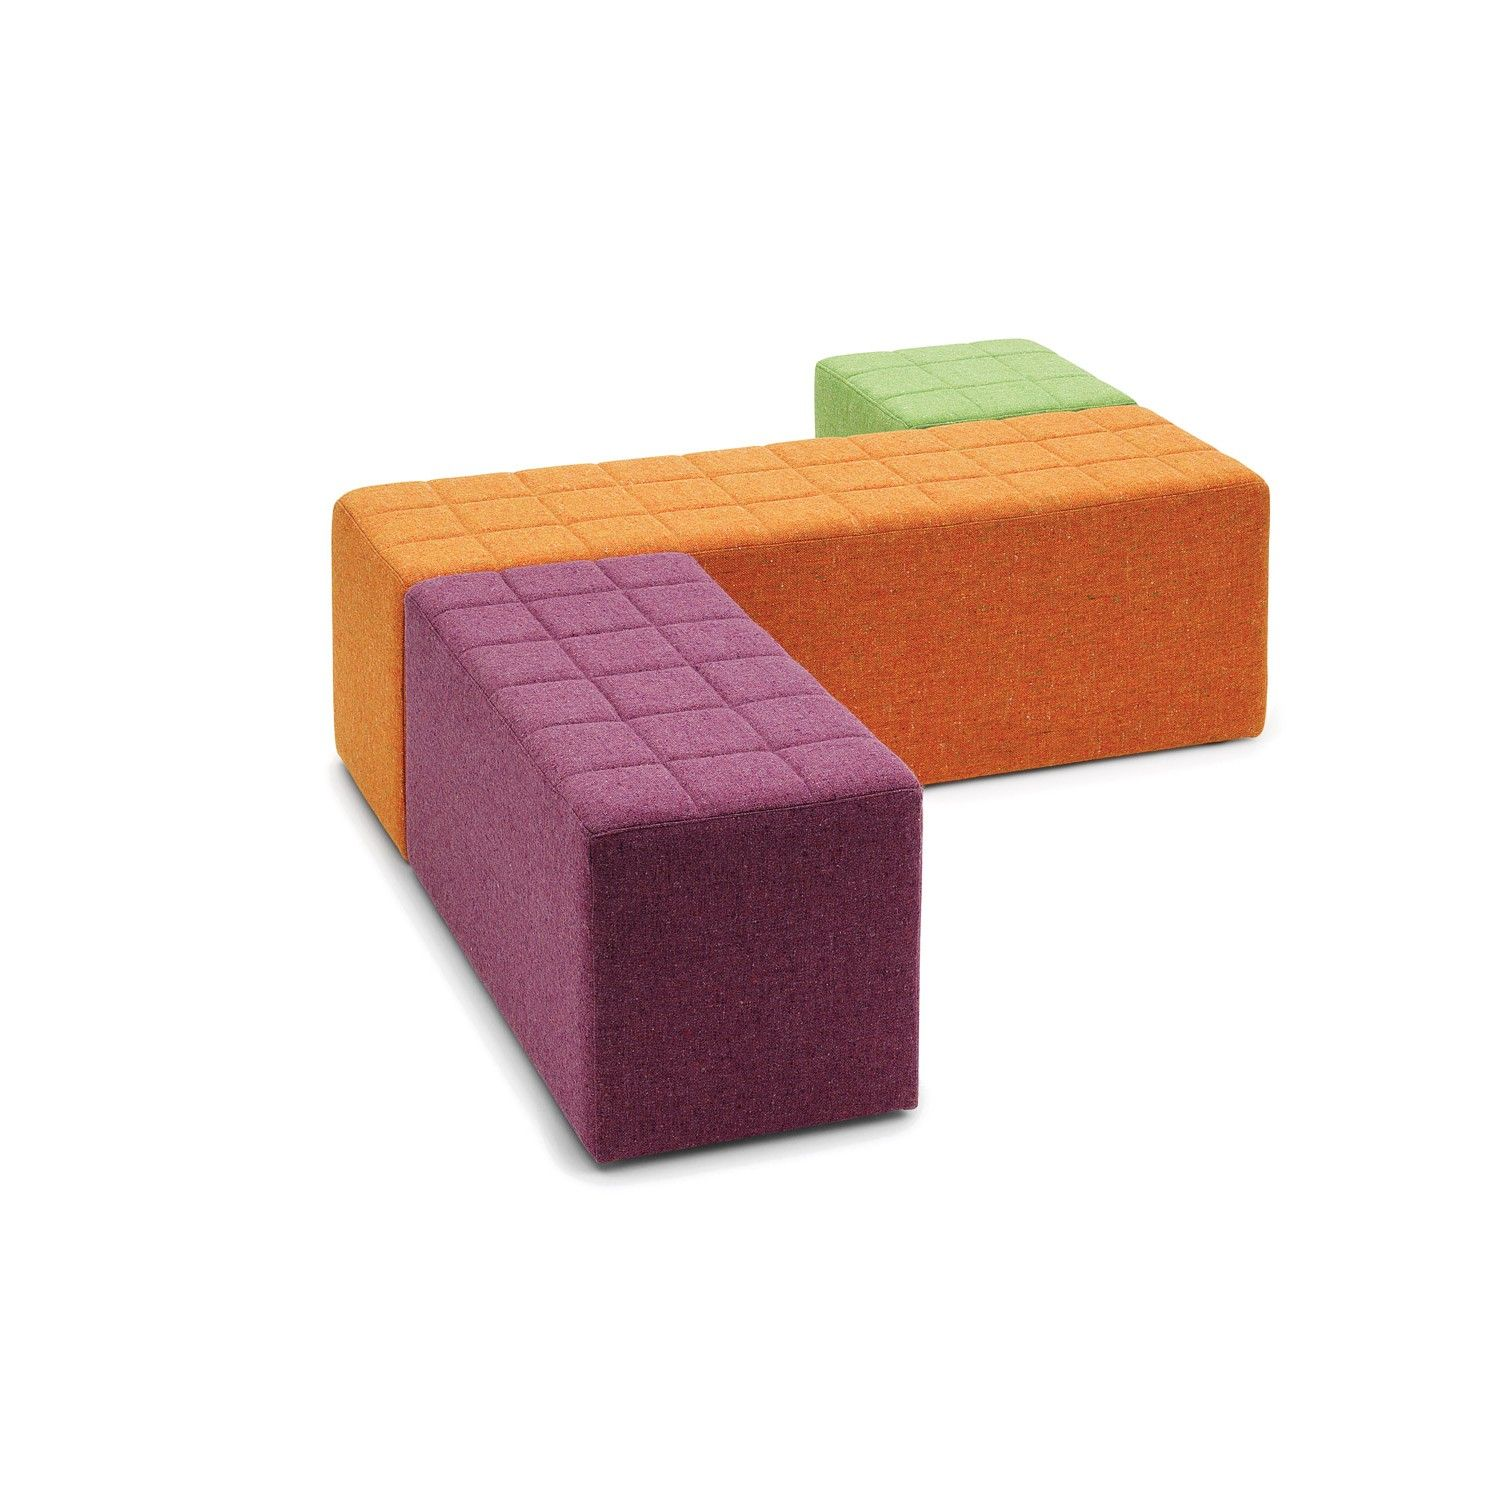 Cube Quilted is a variation on the standard upholstered Cube Stool, but featuring a linear quilted detail to the user face.  http://www.apresfurniture.co.uk/qube-quilted-stool